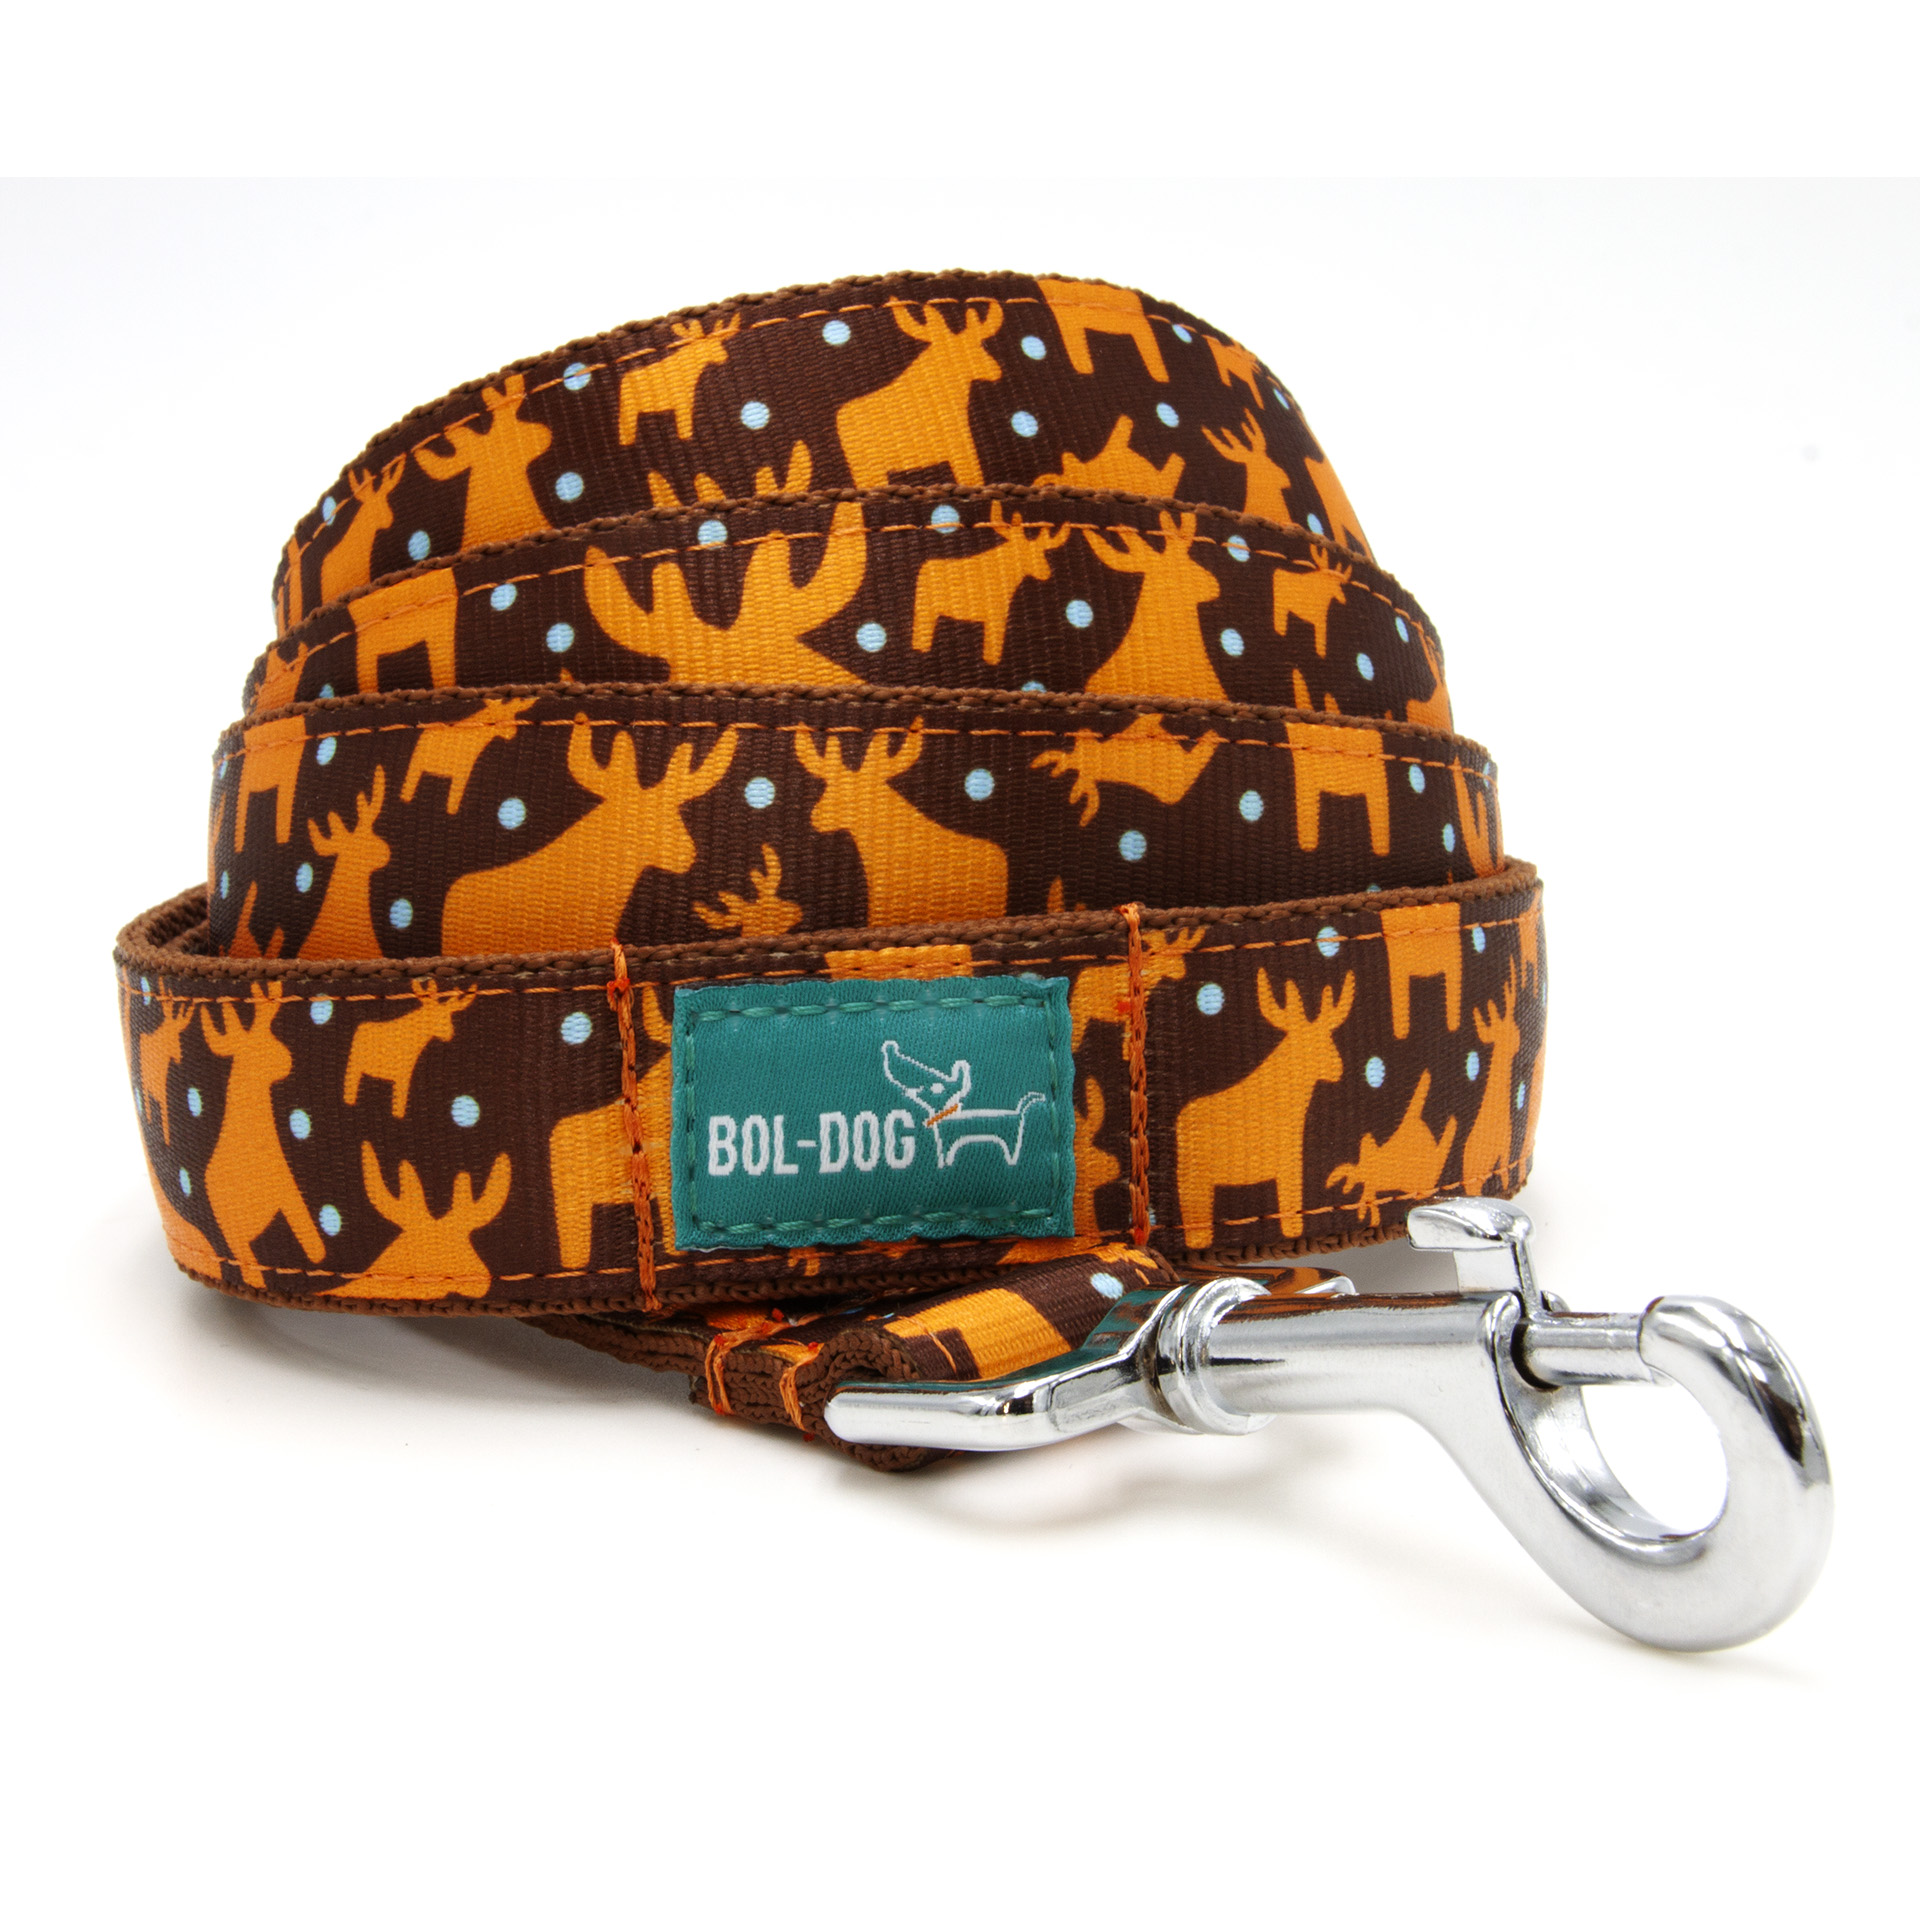 Honey deer dog leash